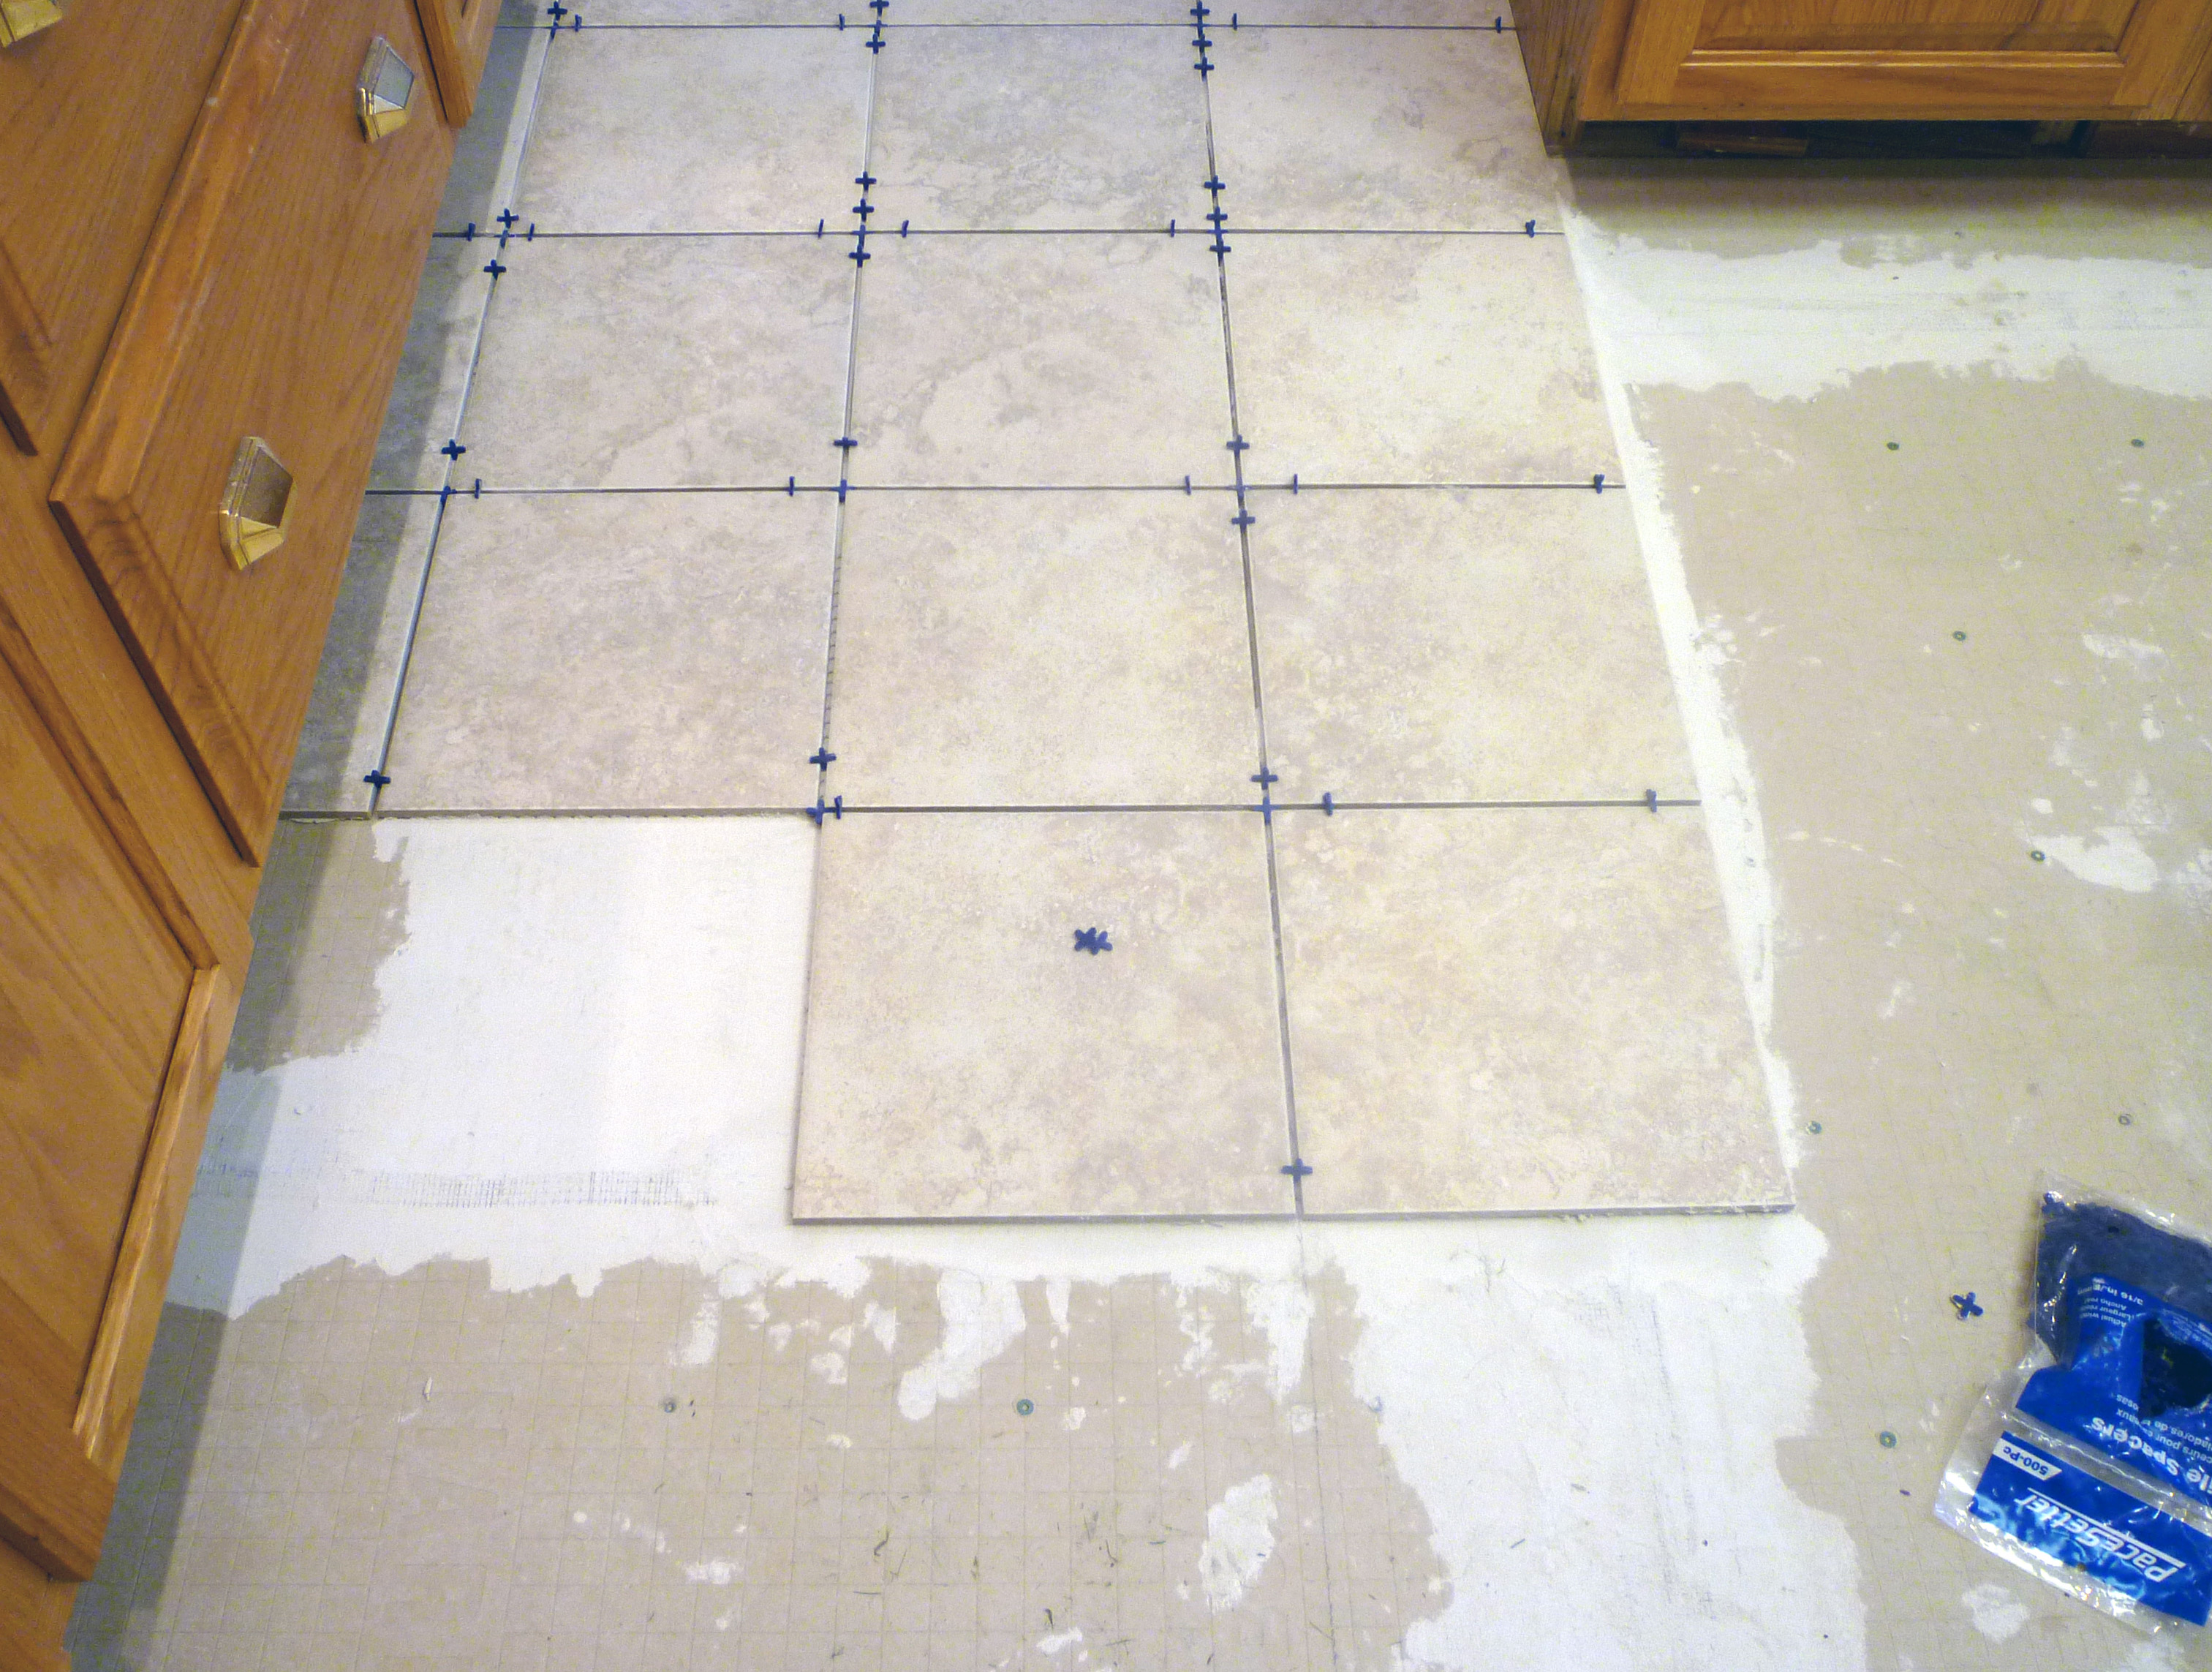 All For A New Dishwasher – New Kitchen Floor and Lights